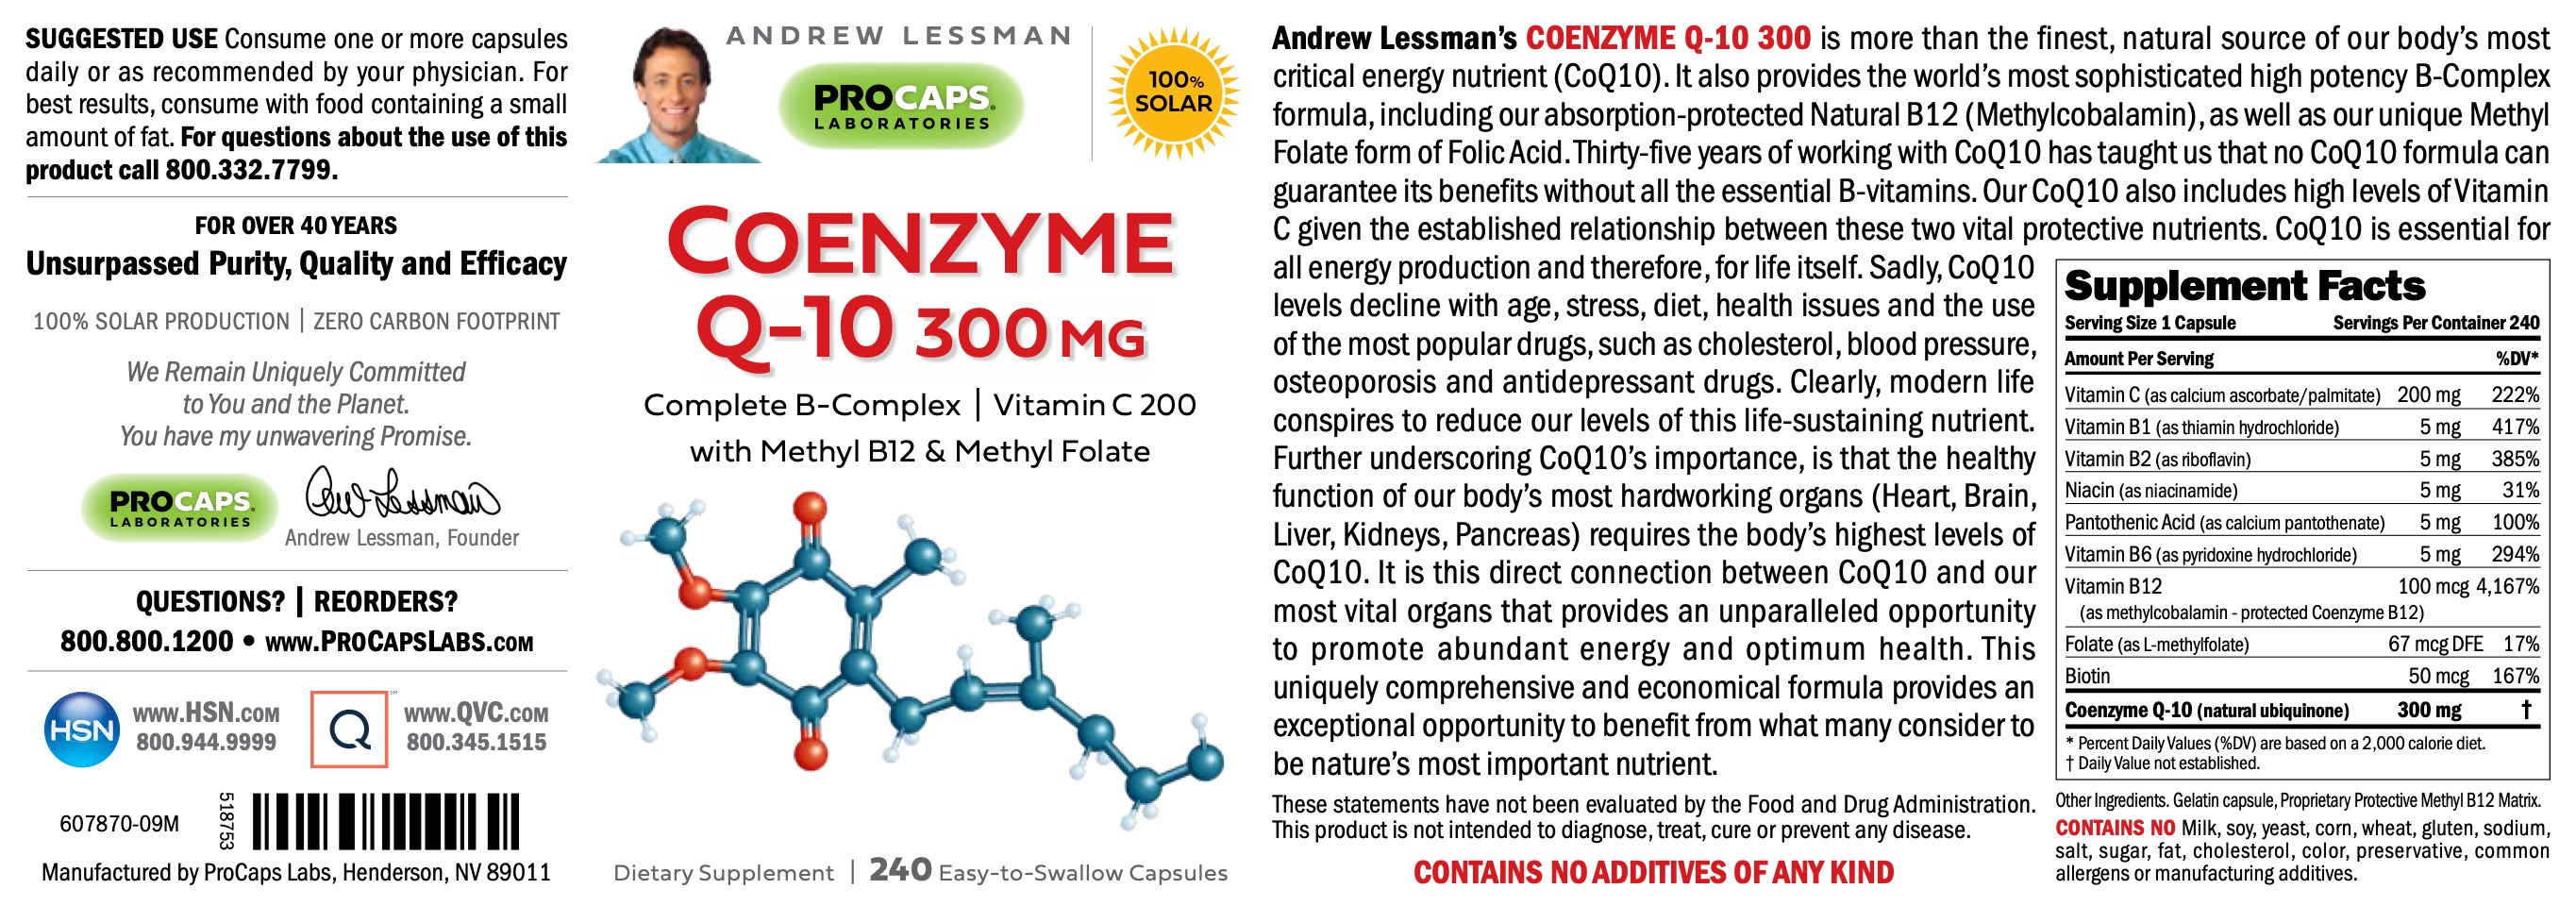 CoEnzyme-Q-10-300-mg-Capsules-Anti-oxidants